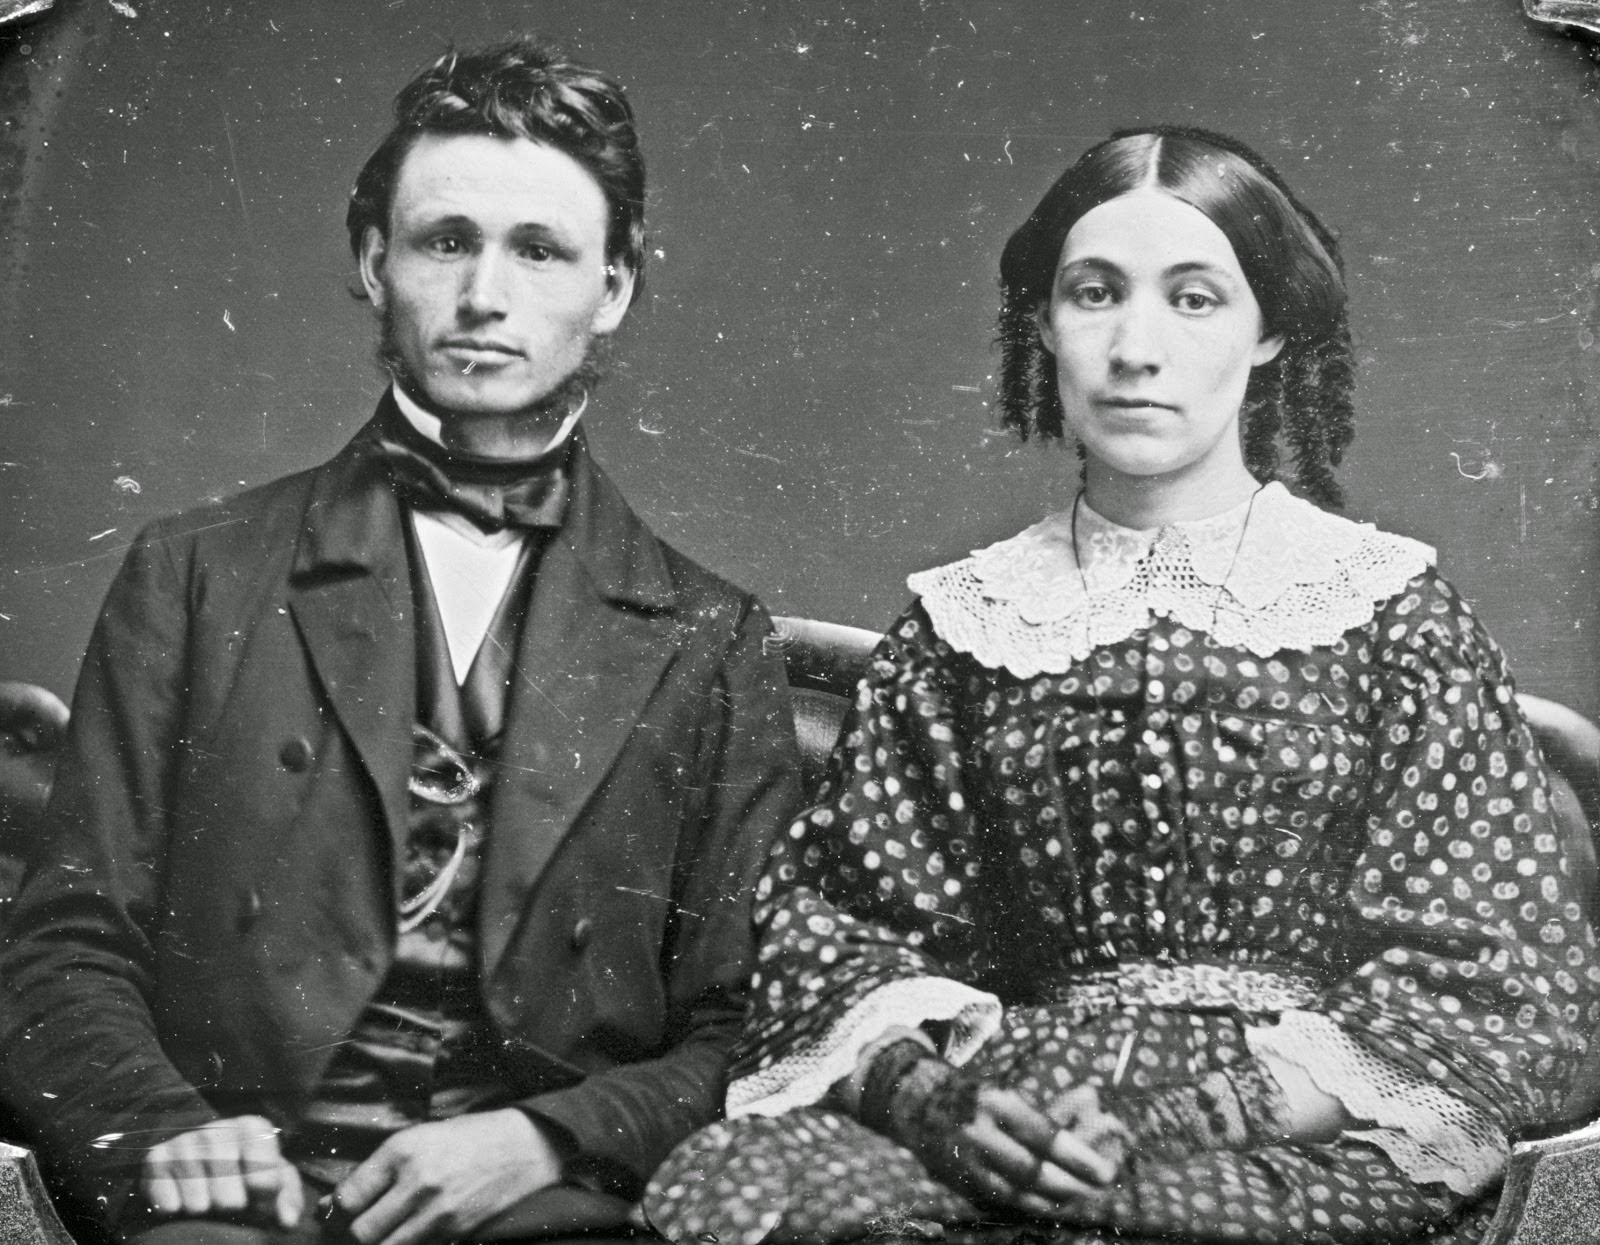 the th century gentleman gender roles in 19th century america